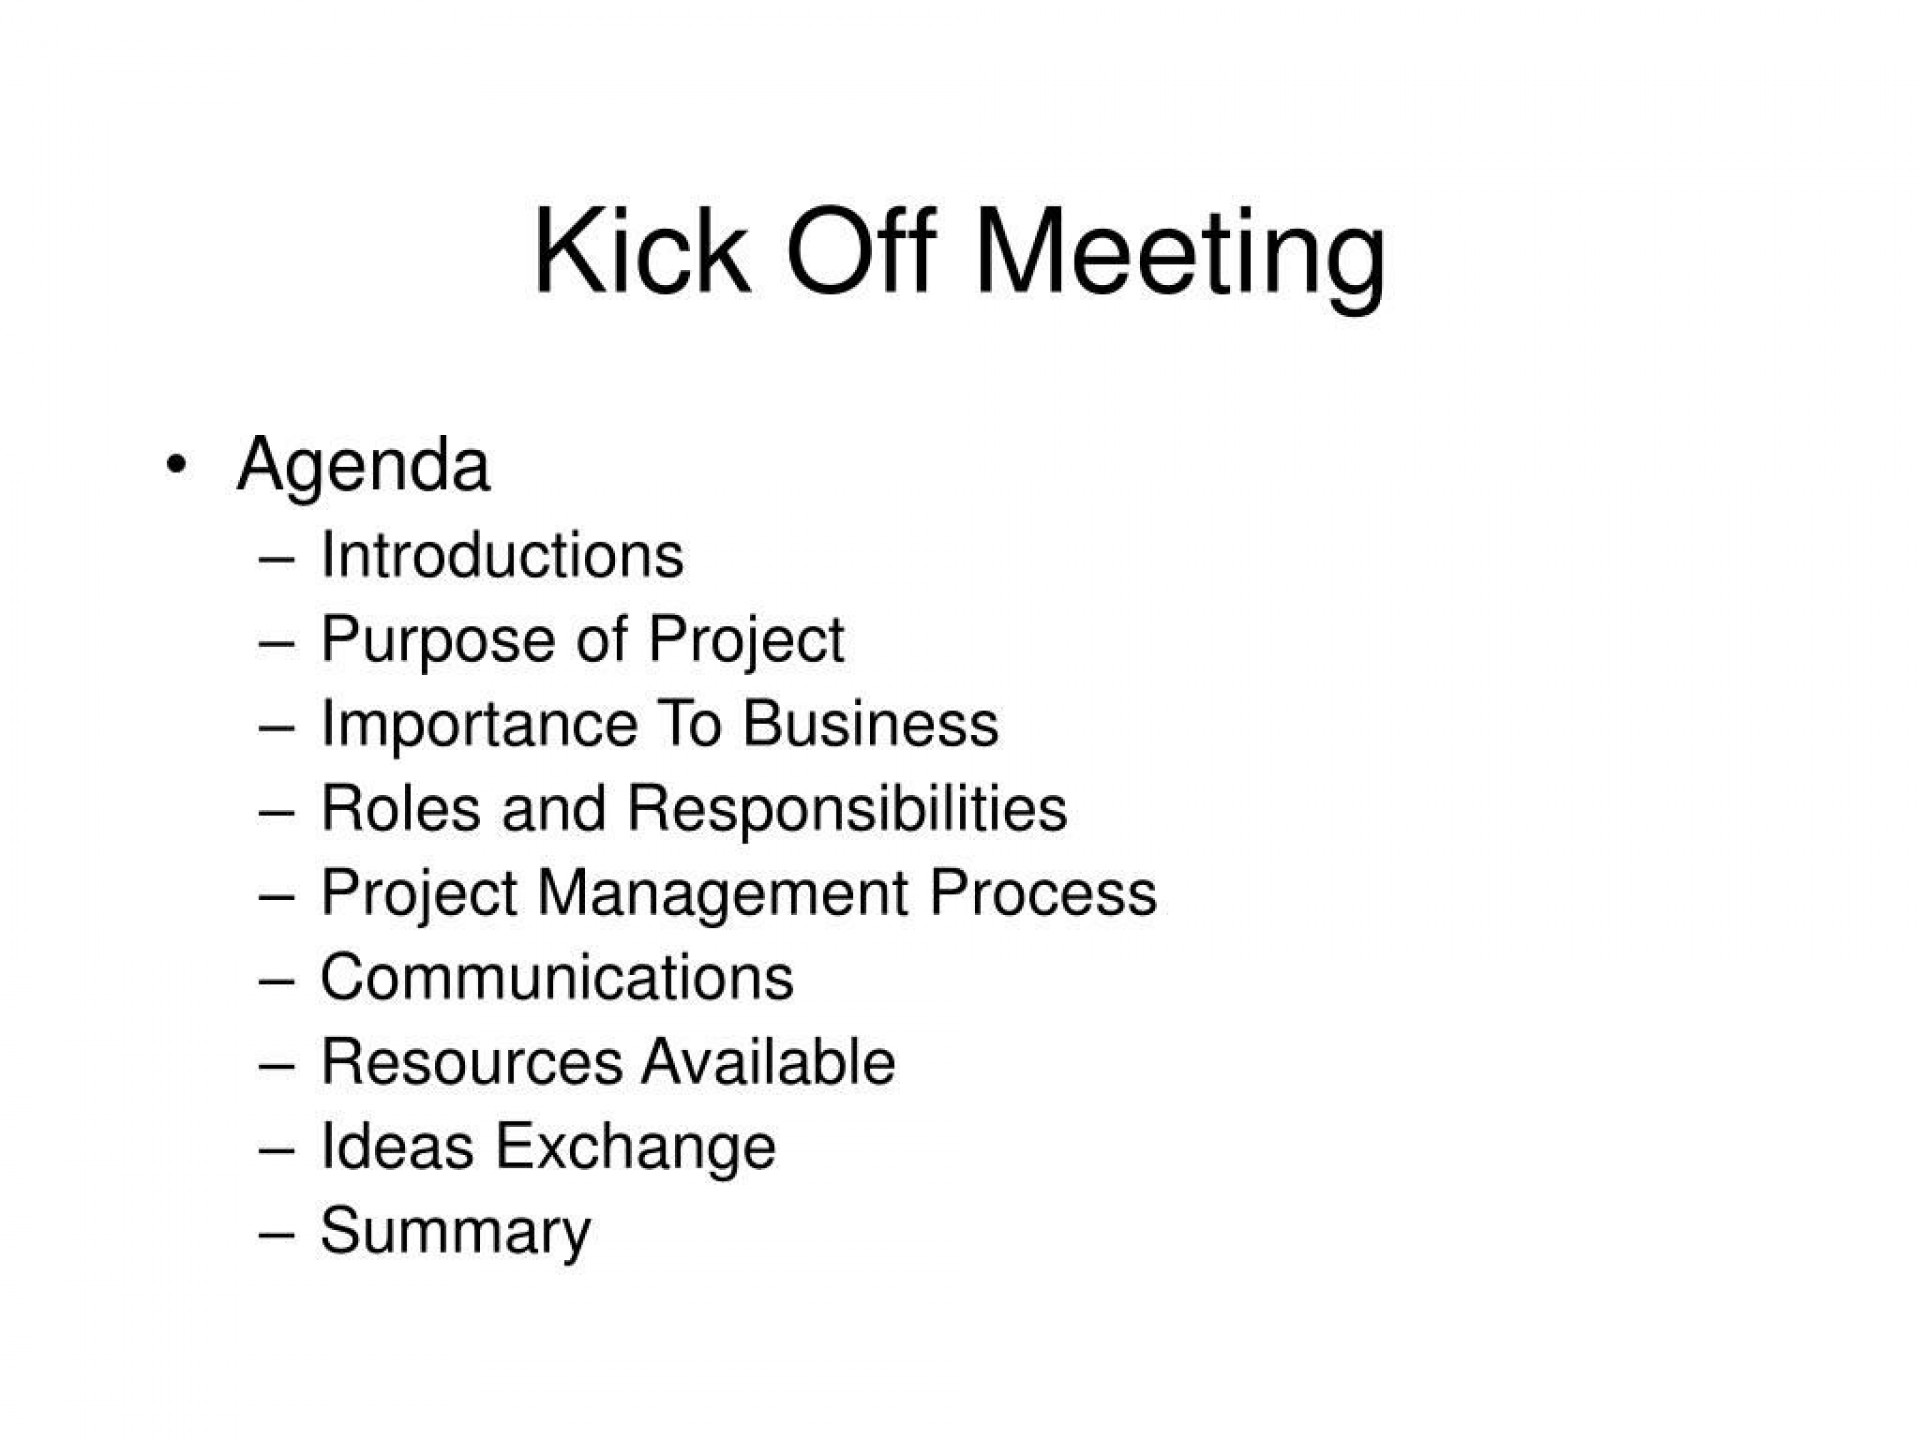 007 Stunning Project Team Kickoff Meeting Agenda Template Highest Quality 1920